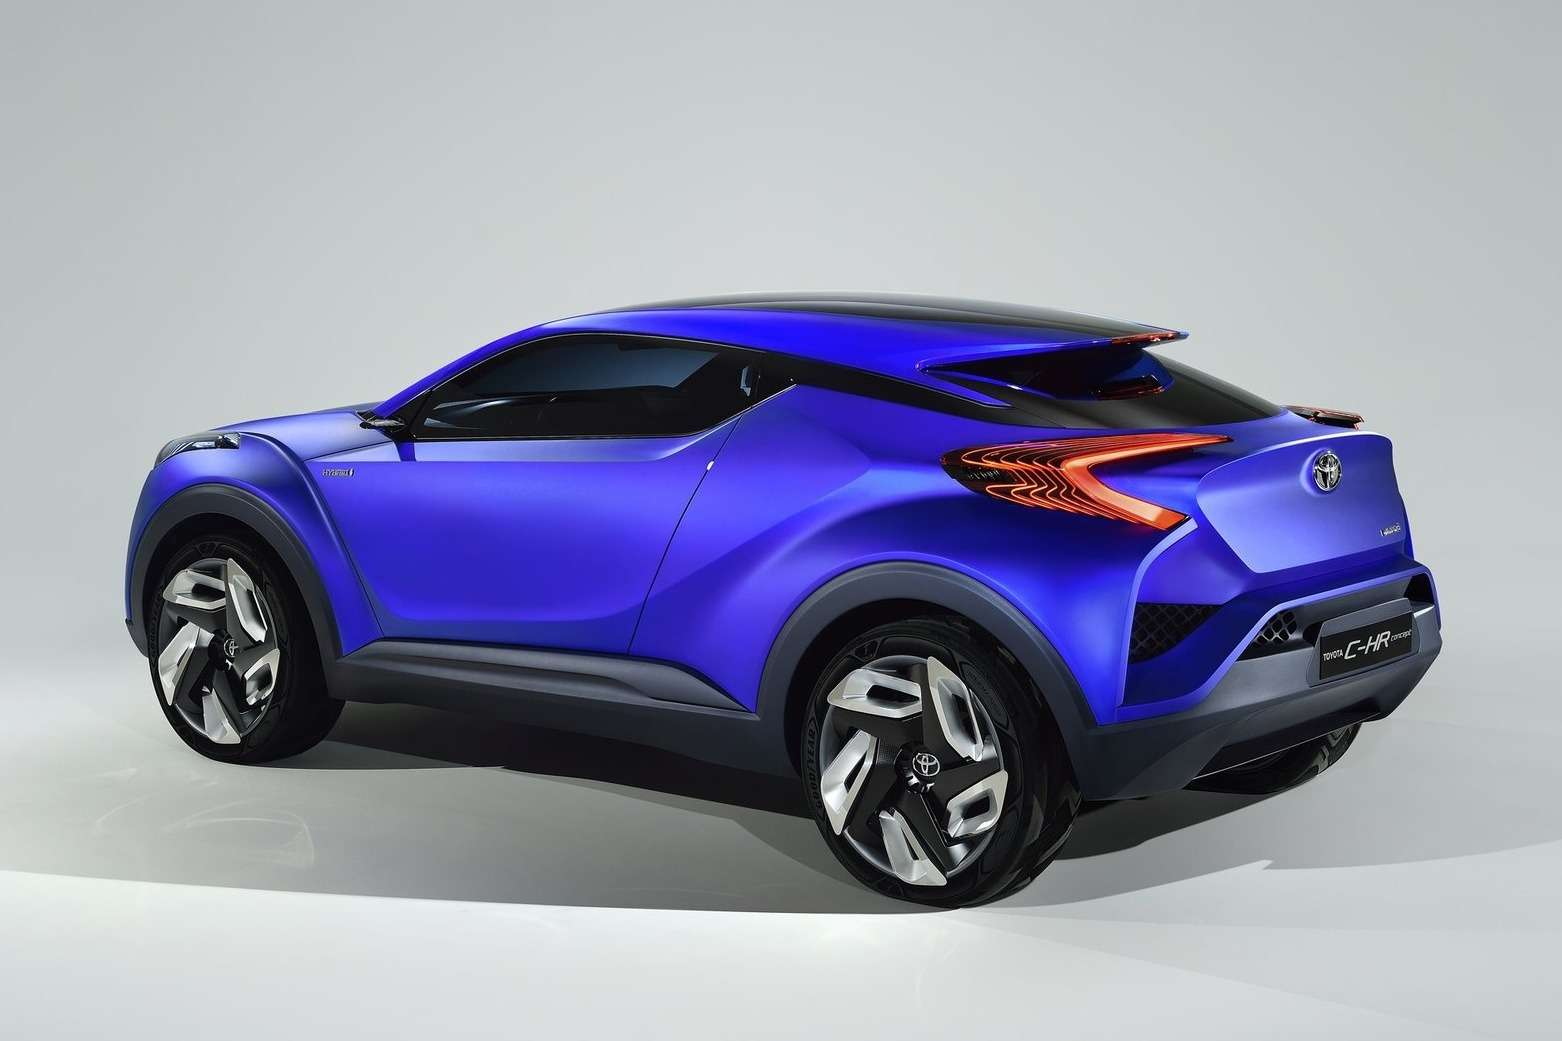 Toyota-C-HR_Concept_2014_1600x1200_wallpaper_0a